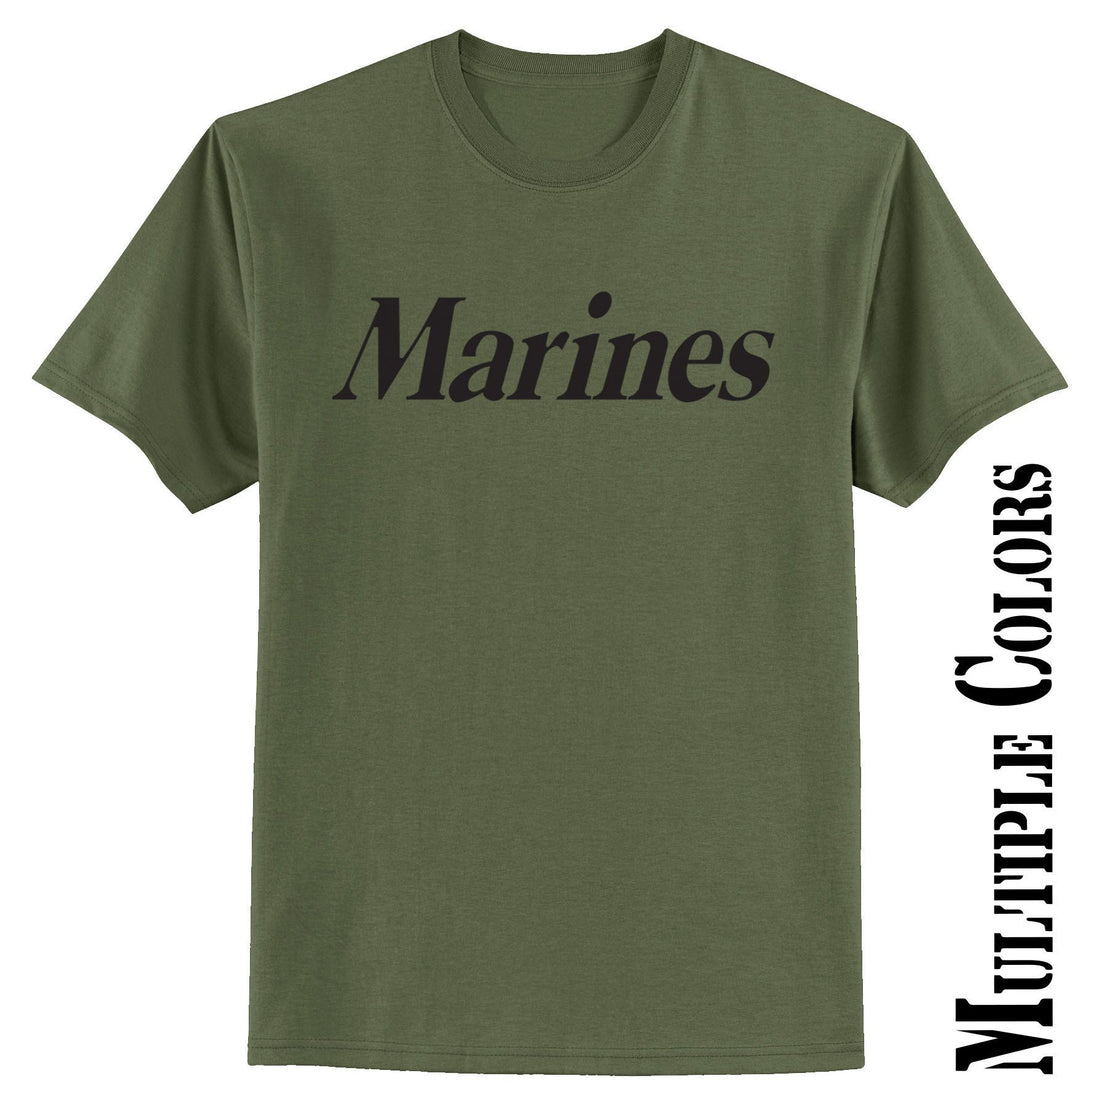 Marines Tee - Marine Corps Direct  - 1